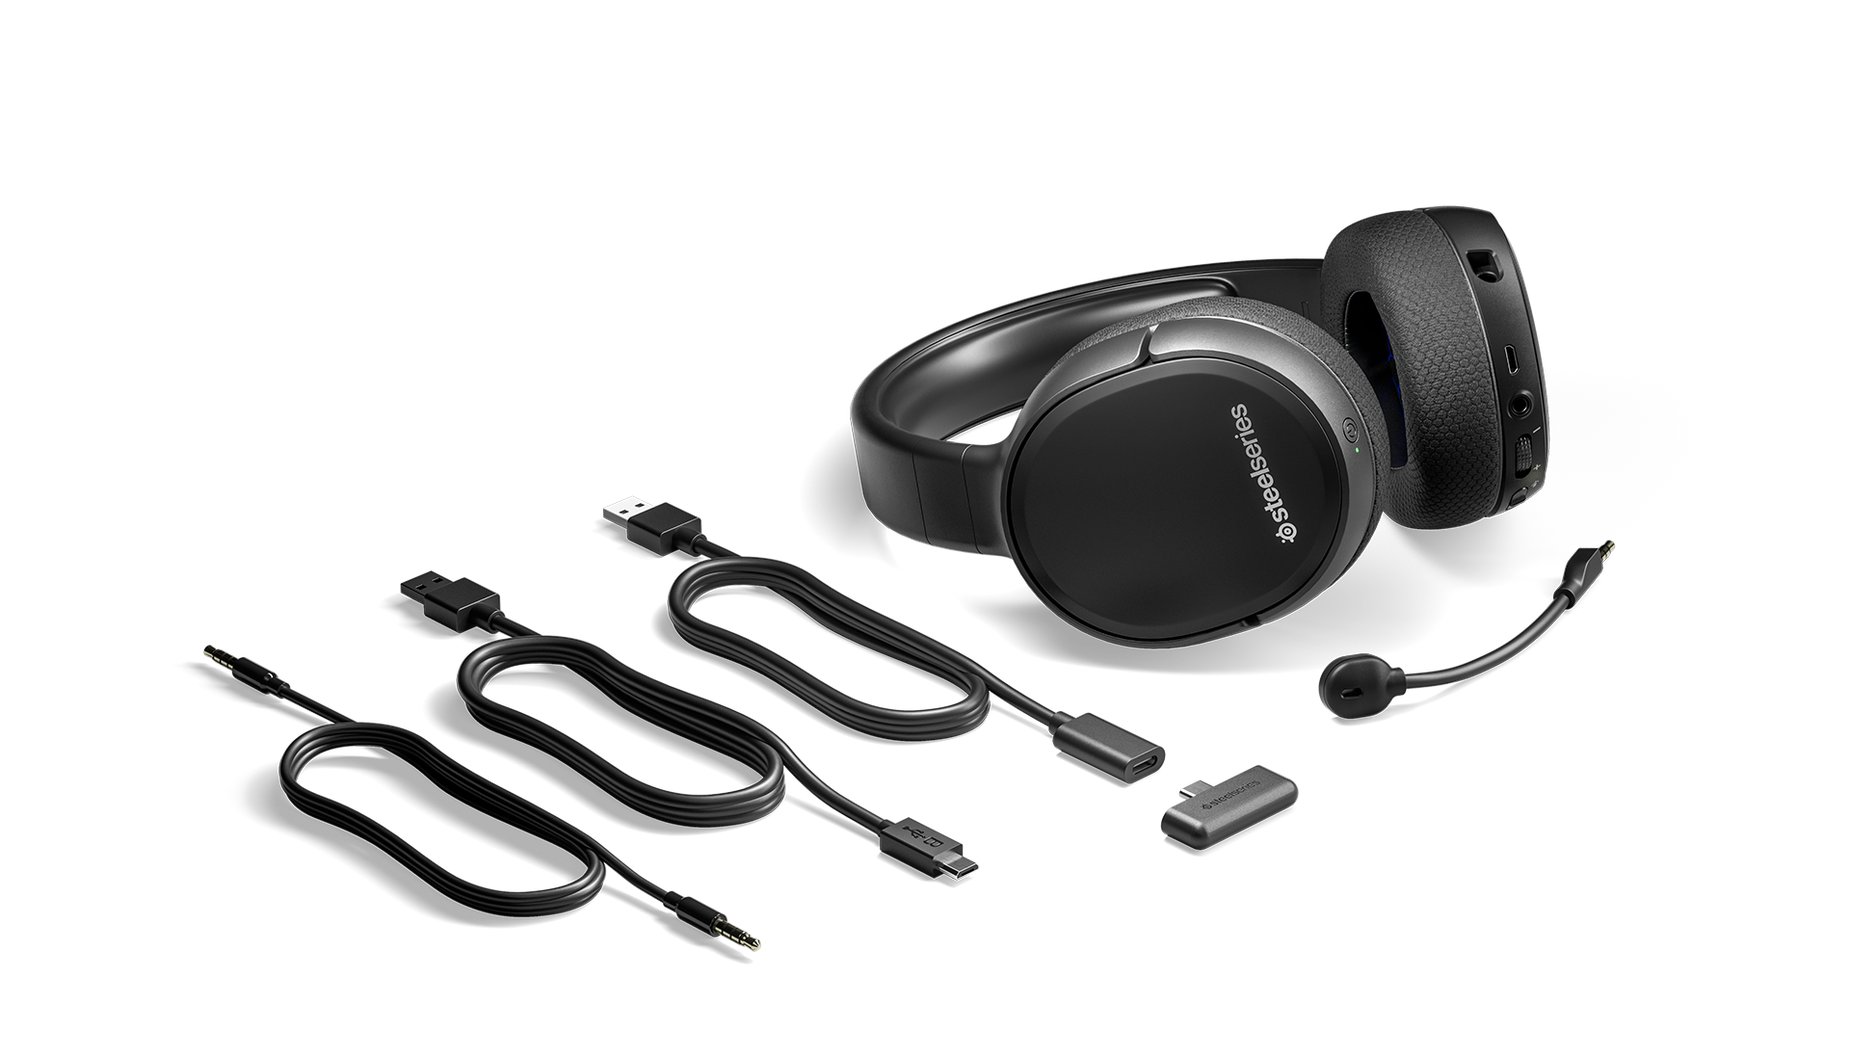 The Arctis 1 Wireless for Switch gaming headset surrounded by all the box contents including extra cables and the wireless dongle